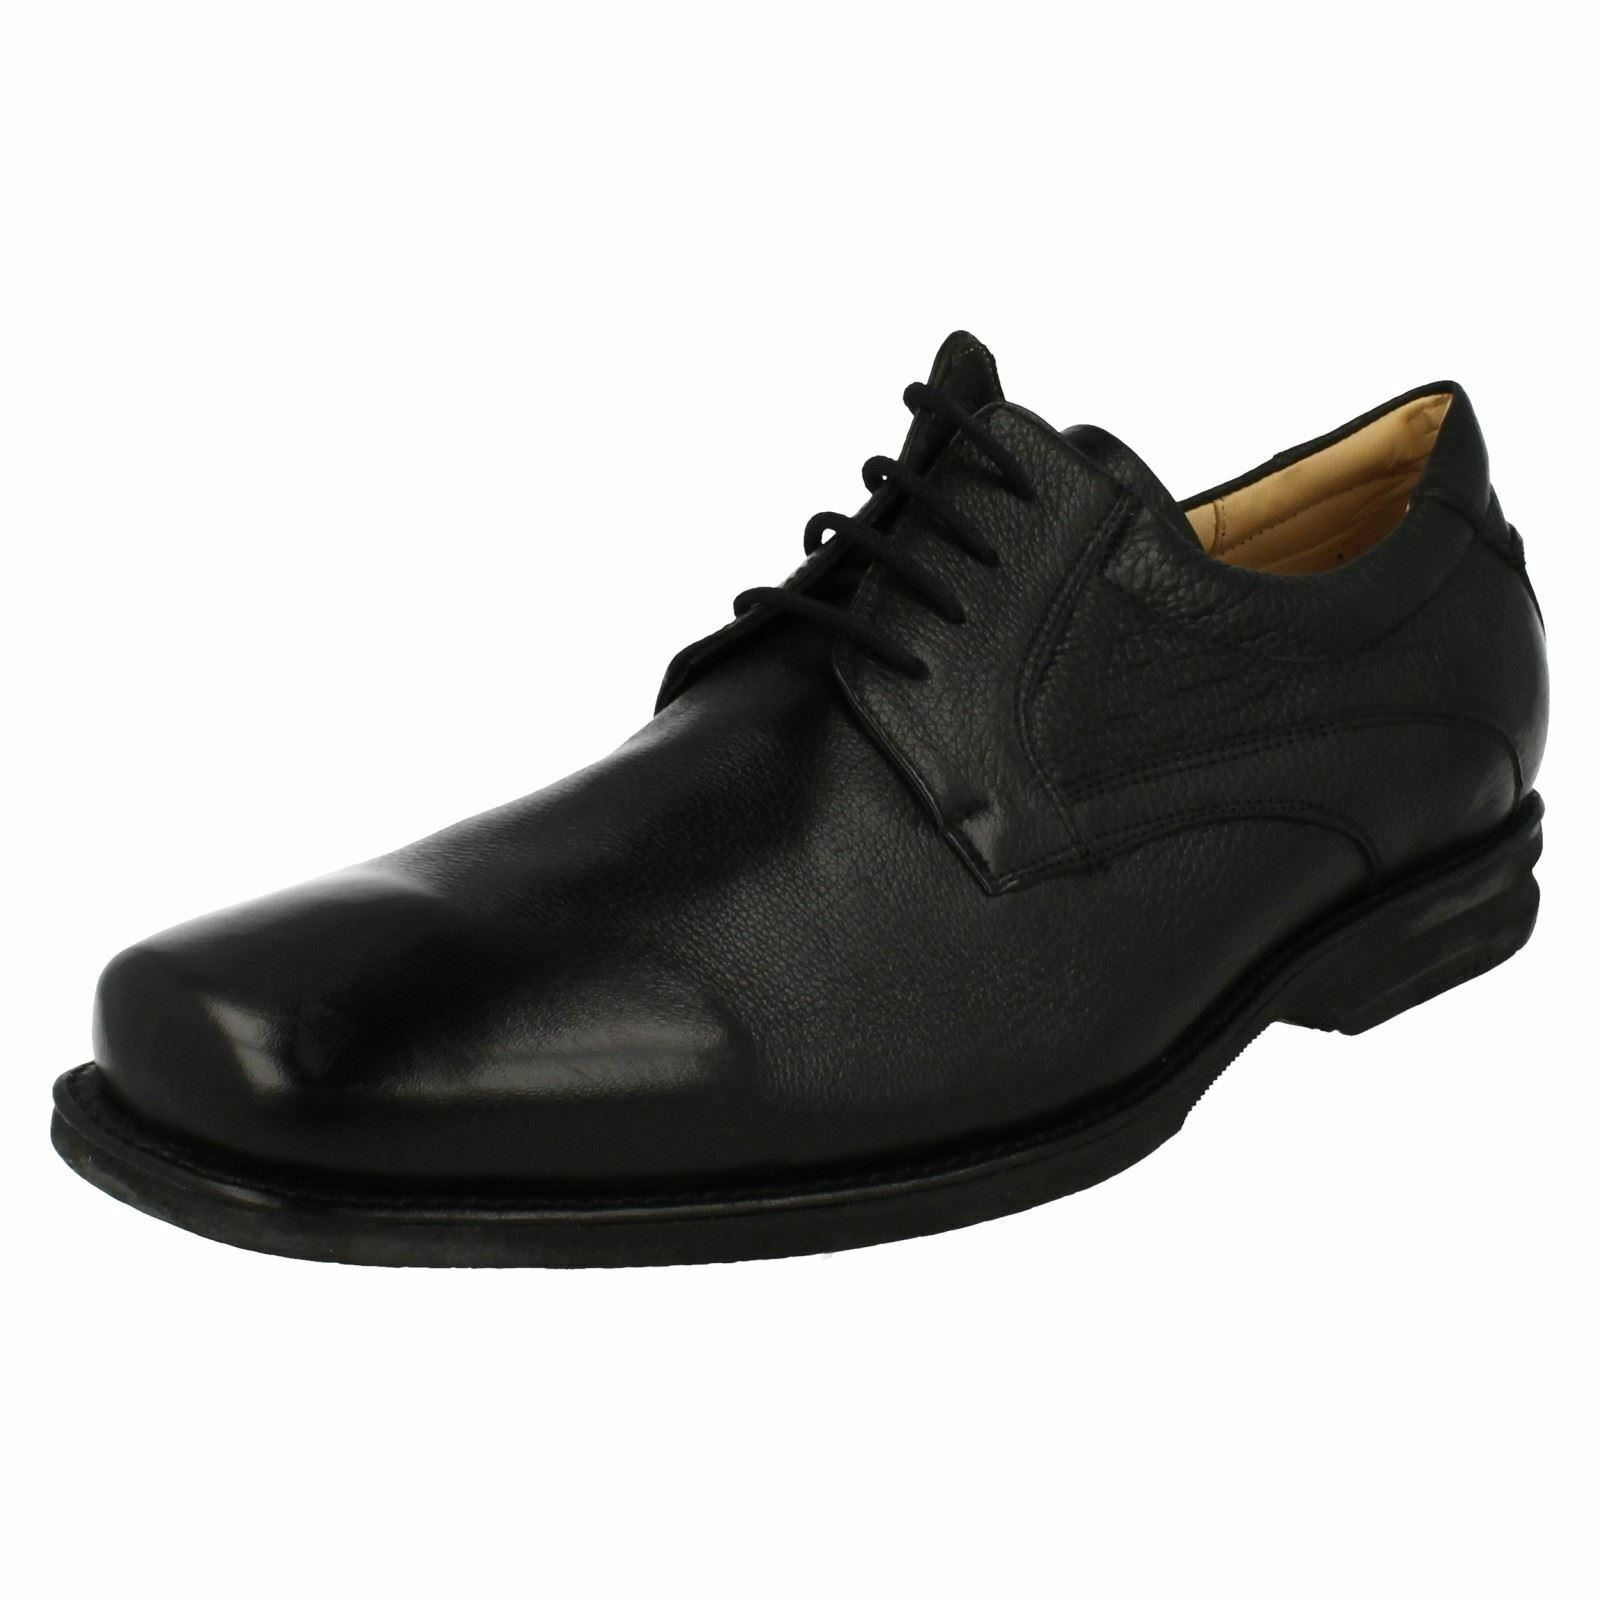 Mens Passos Black Leather Lace Up Shoes By Anatomic Gel Retail Price 100.00